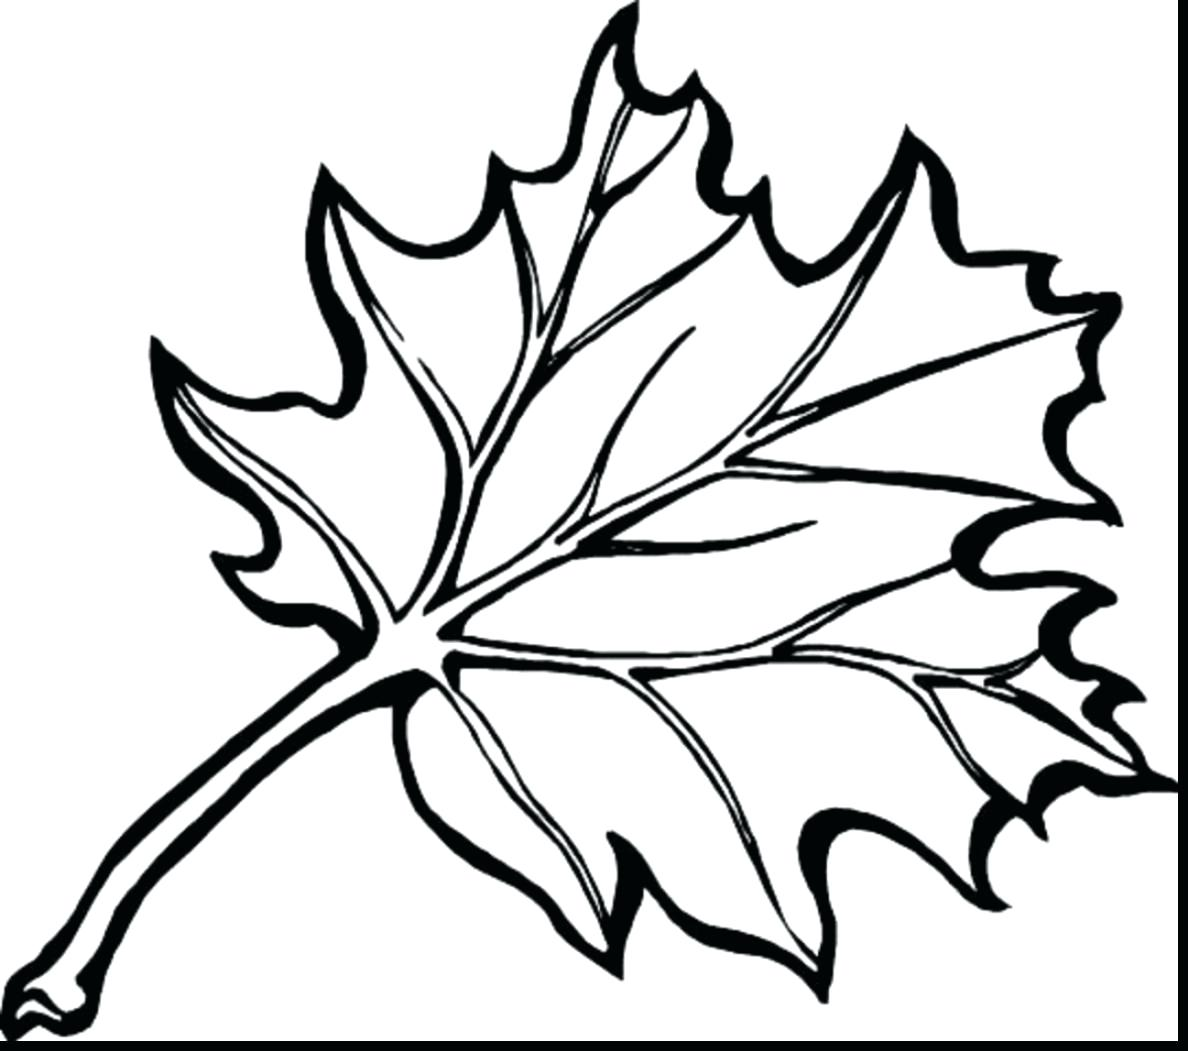 1188x1051 Launching Colouring Pictures Of Leaves Fall Season Coloring Pages